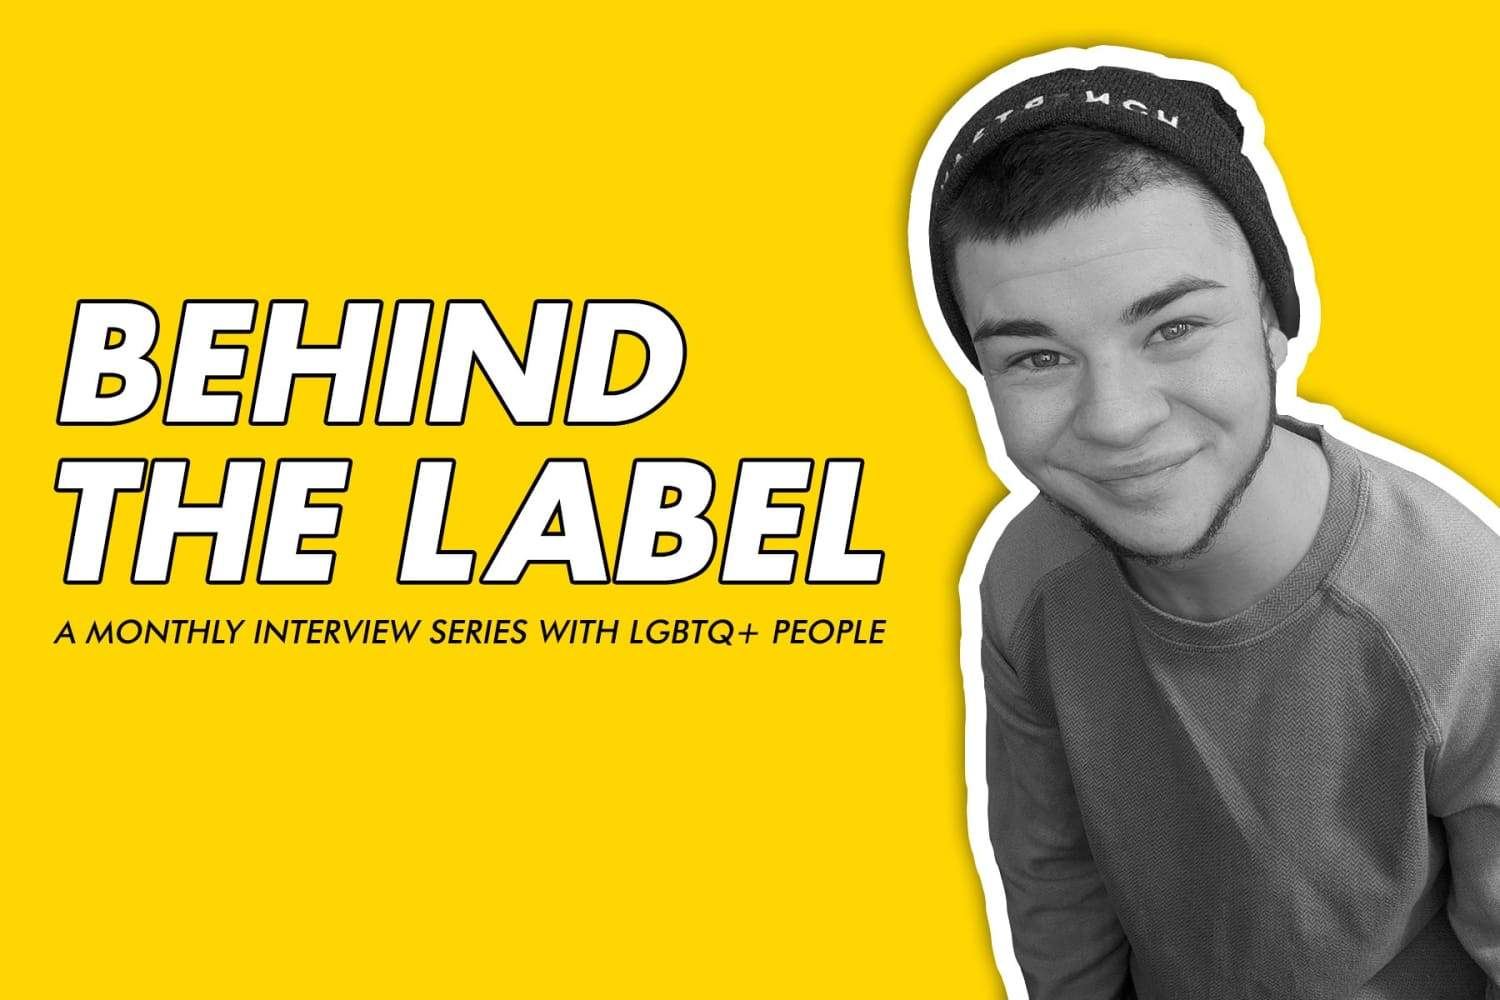 Behind The Label LGBTQ Interview Series Jaxson